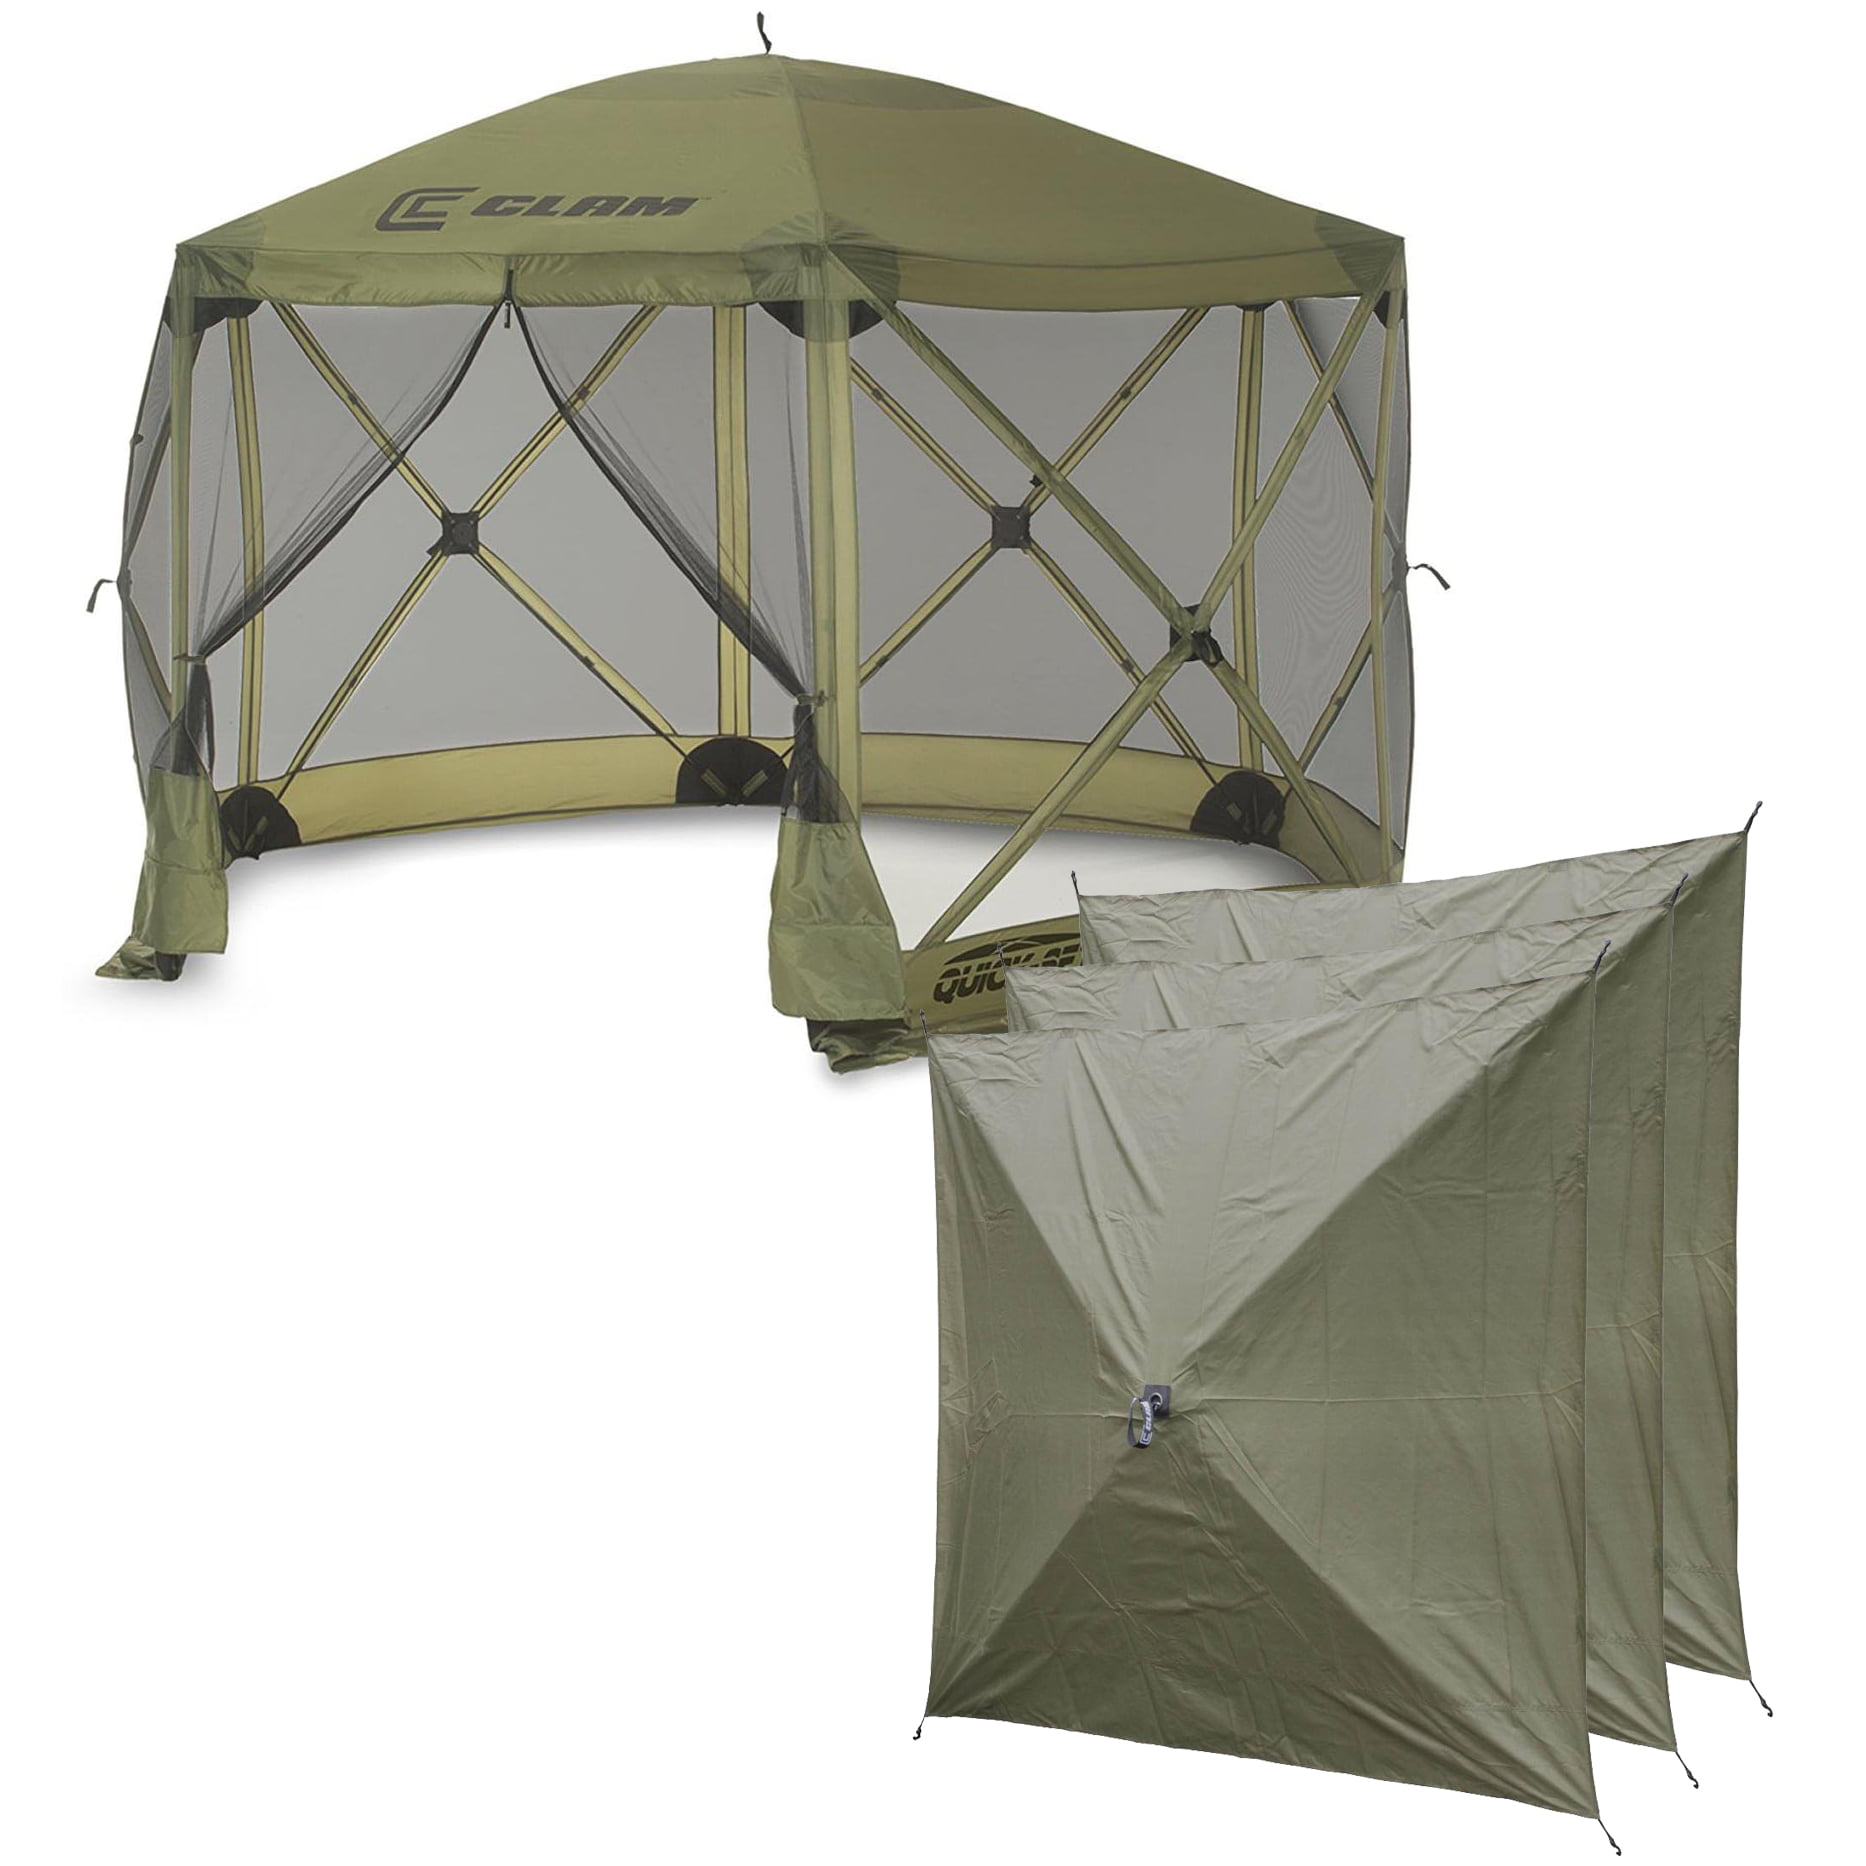 Clam Quick Set Escape Portable Camping Outdoor Canopy ...